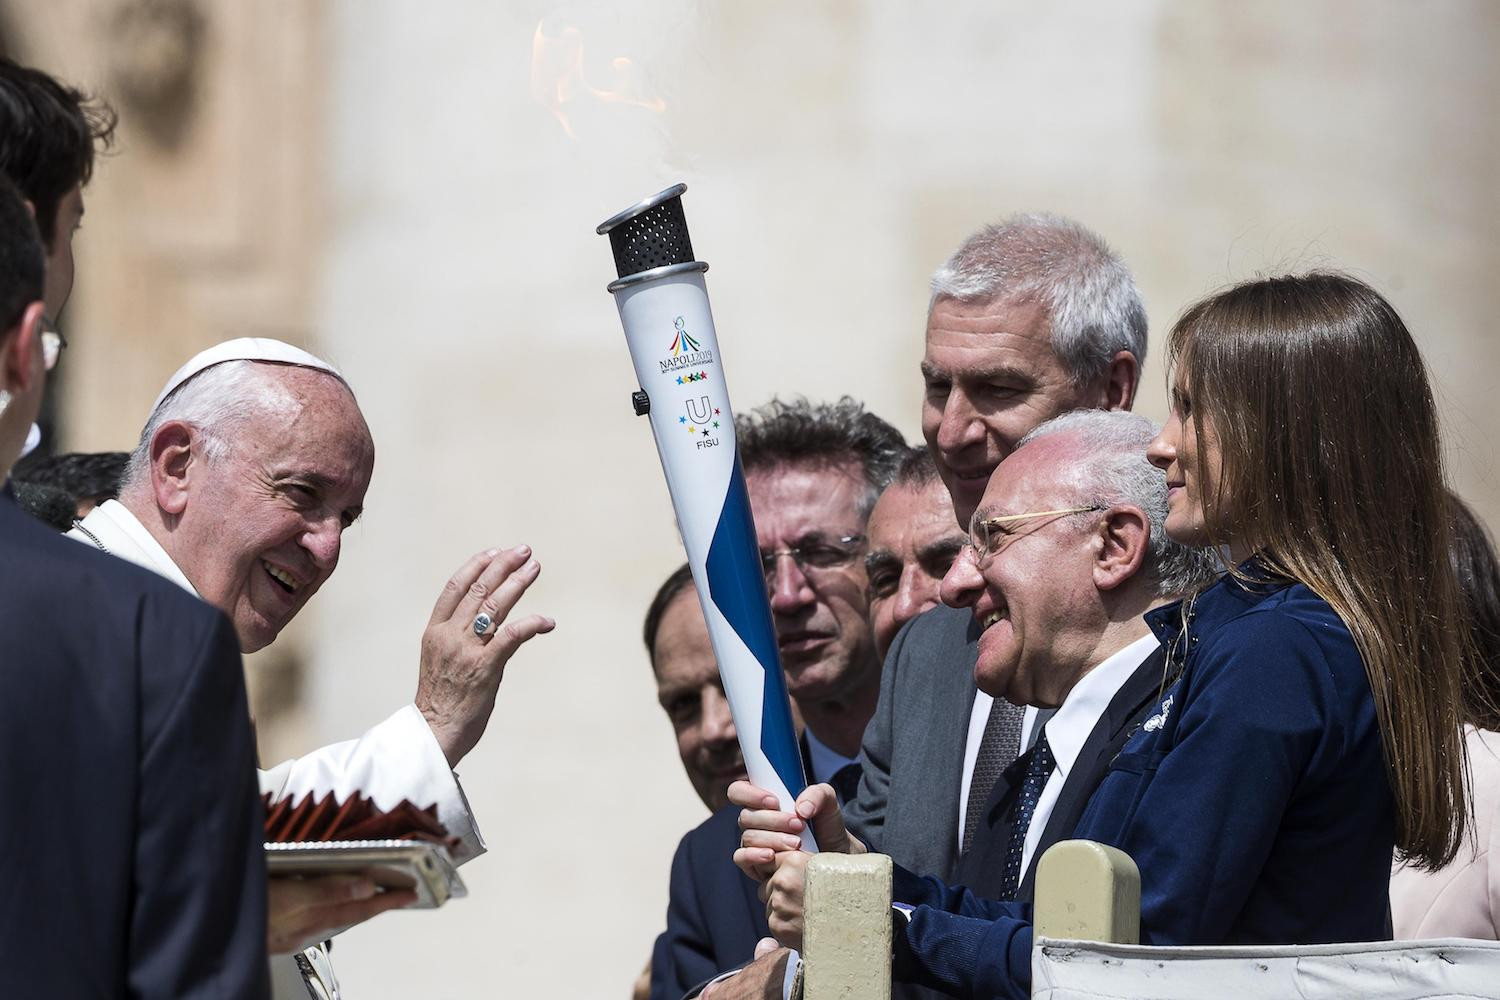 Vatican plans to form National Olympic Committee and march at Paris 2024 Opening Ceremony